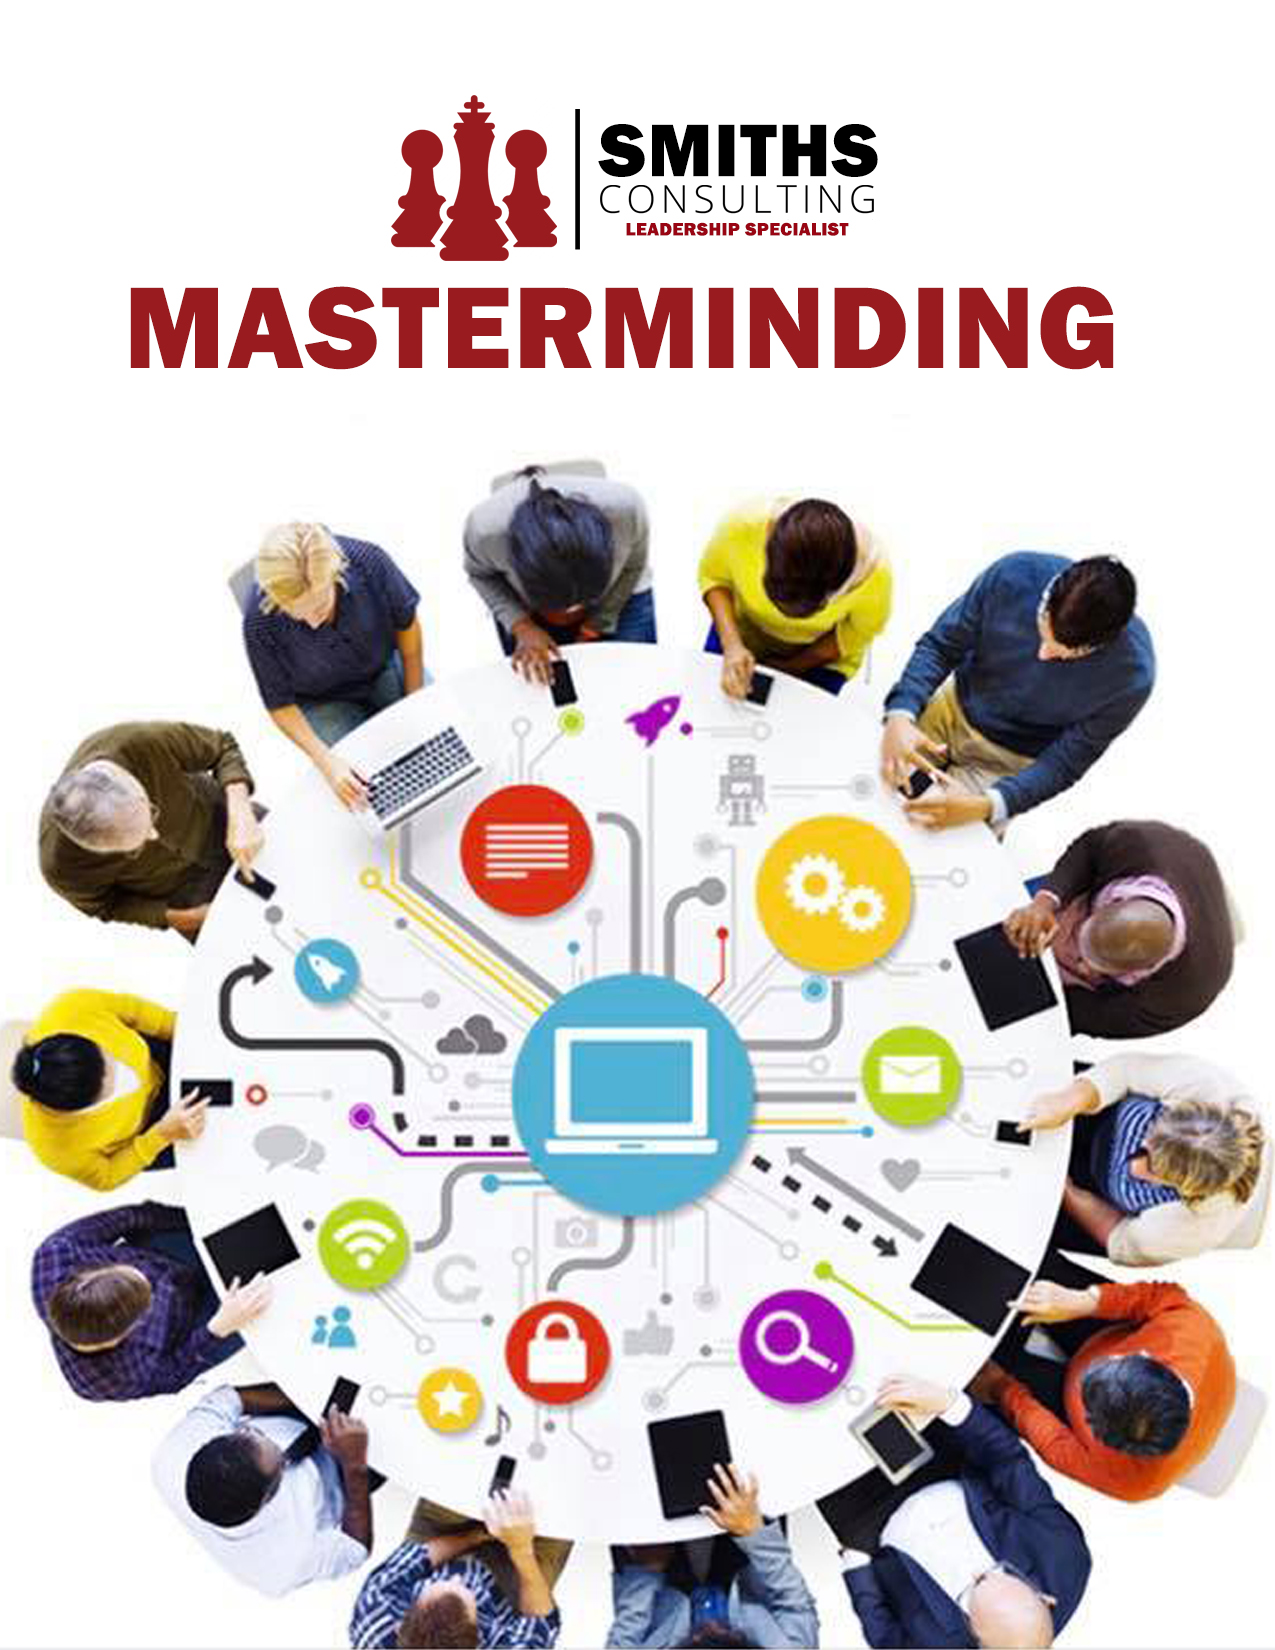 https://smithsconsulting.ca/wp-content/uploads/2019/09/MASTERMINDING.jpg